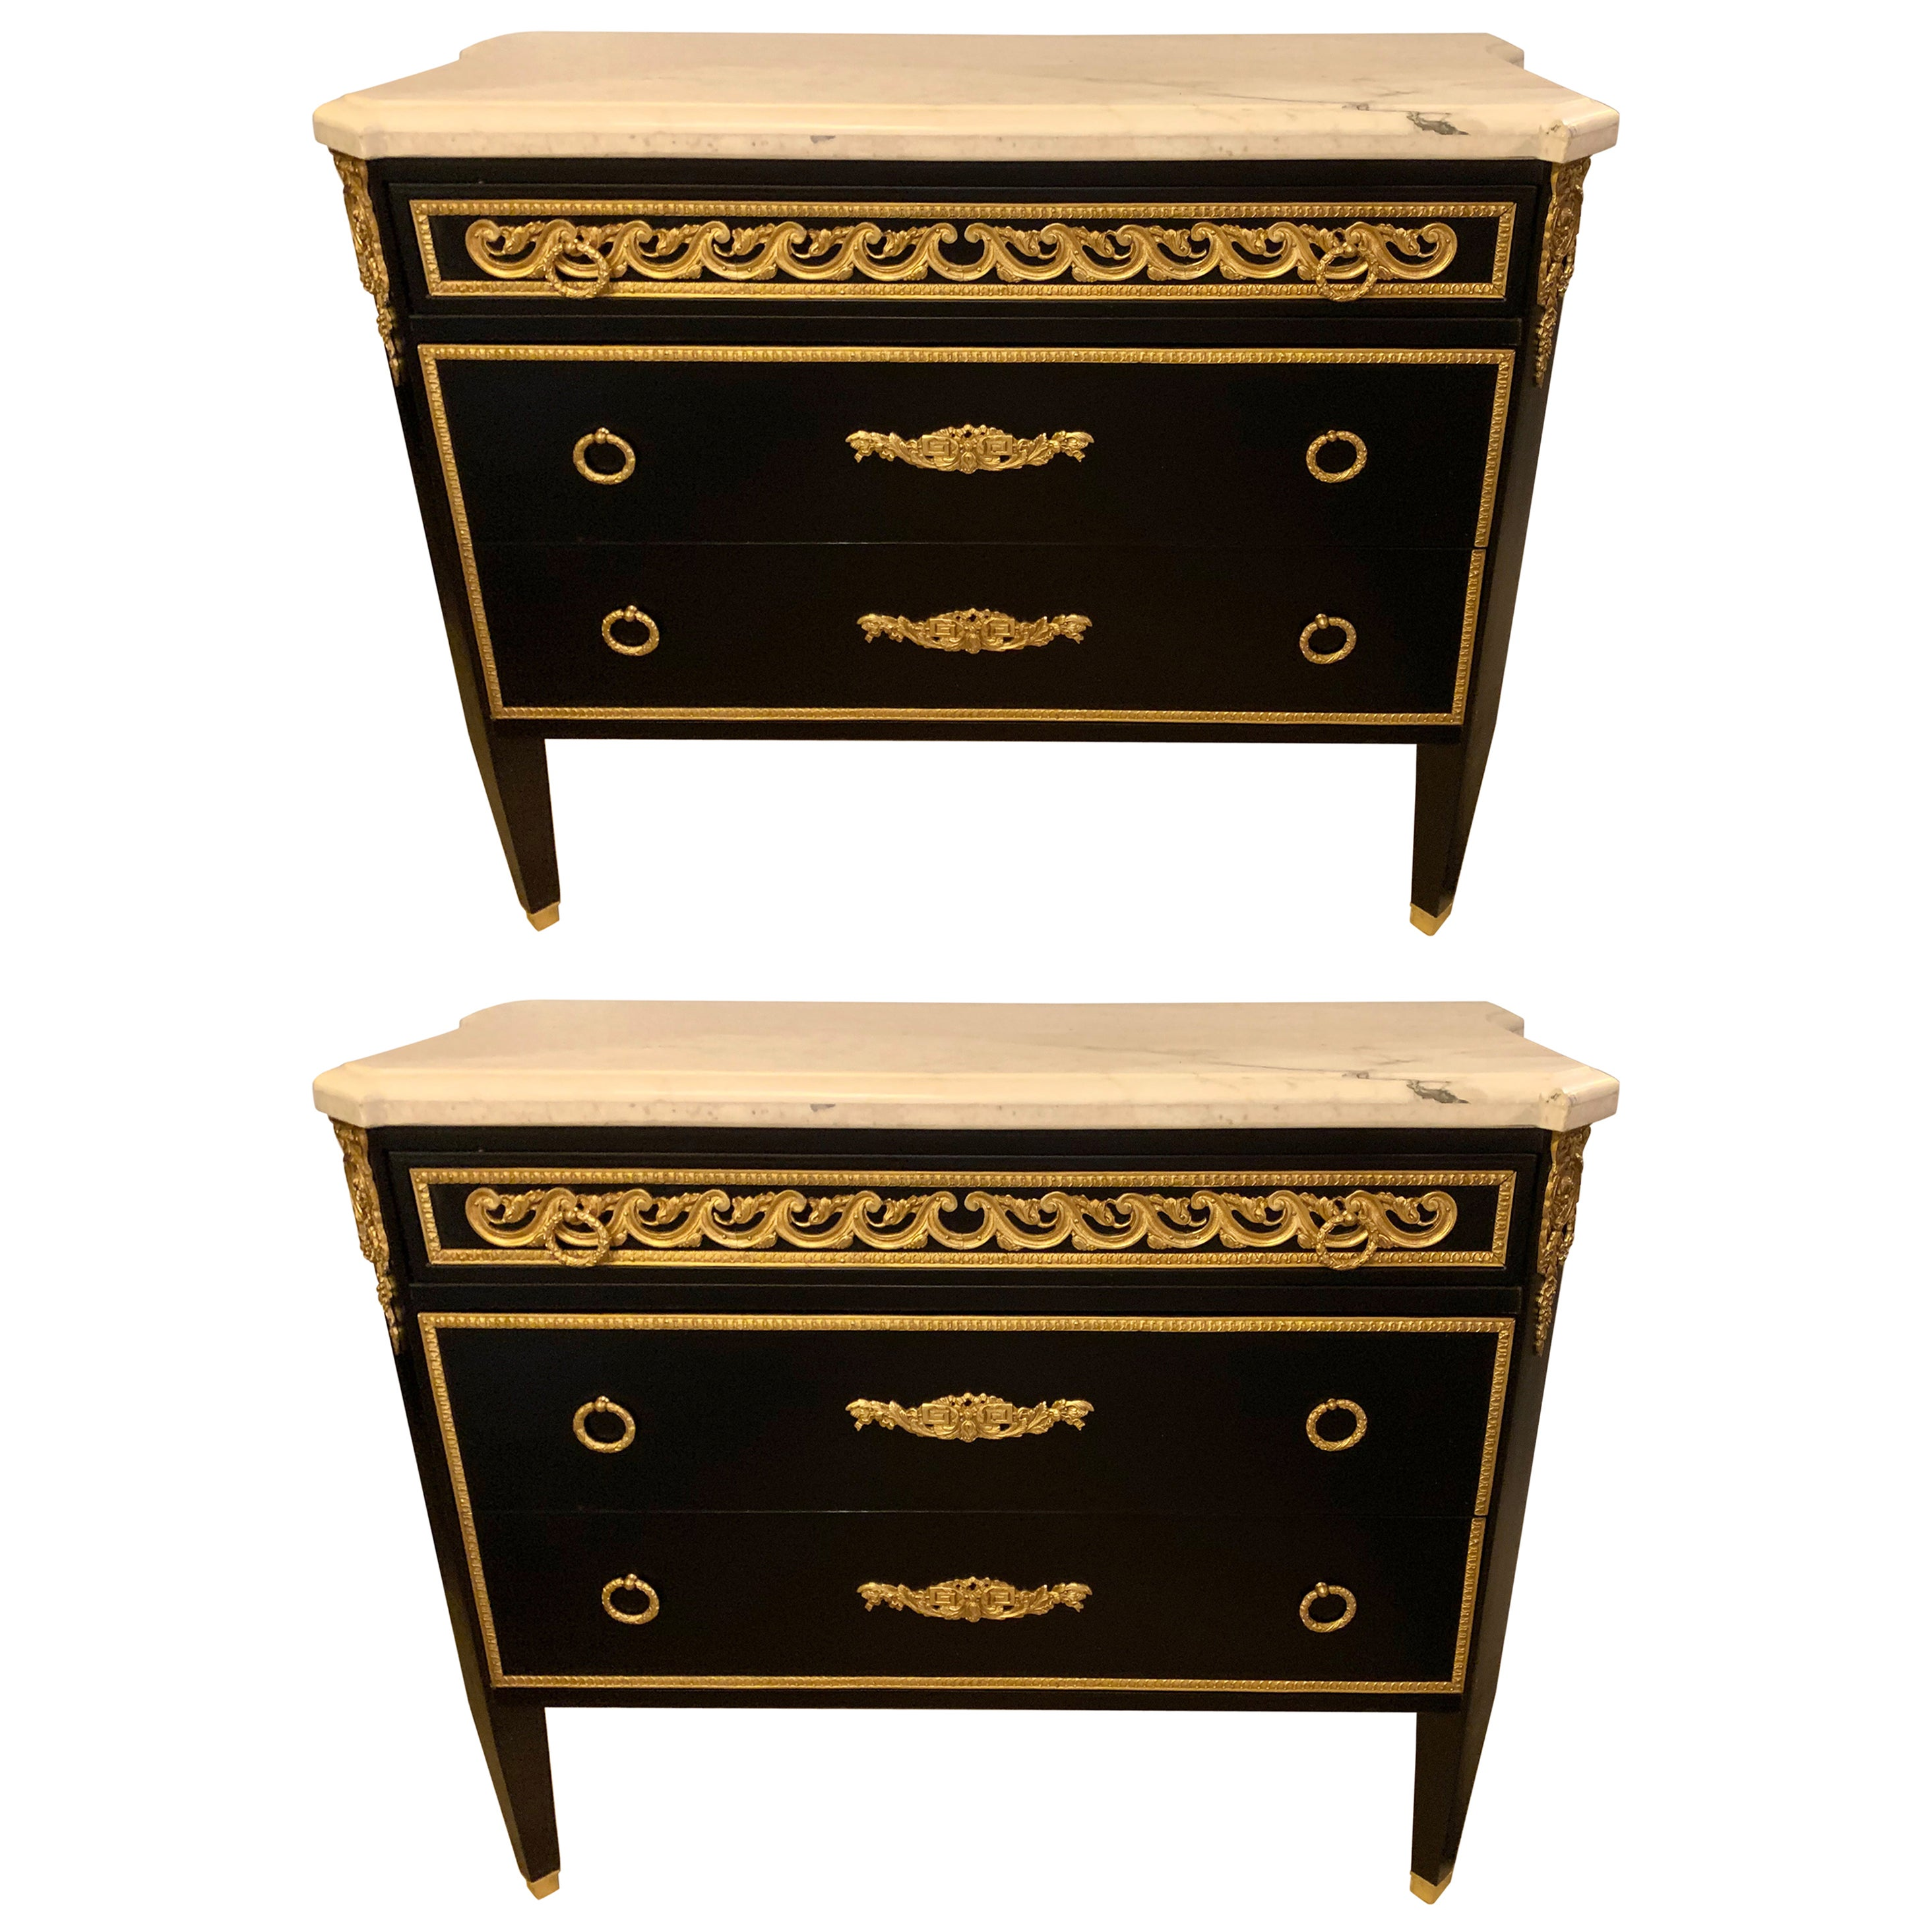 Hollywood Regency Maison Jansen Style Ebony Commodes, Cabinets or Nightstands